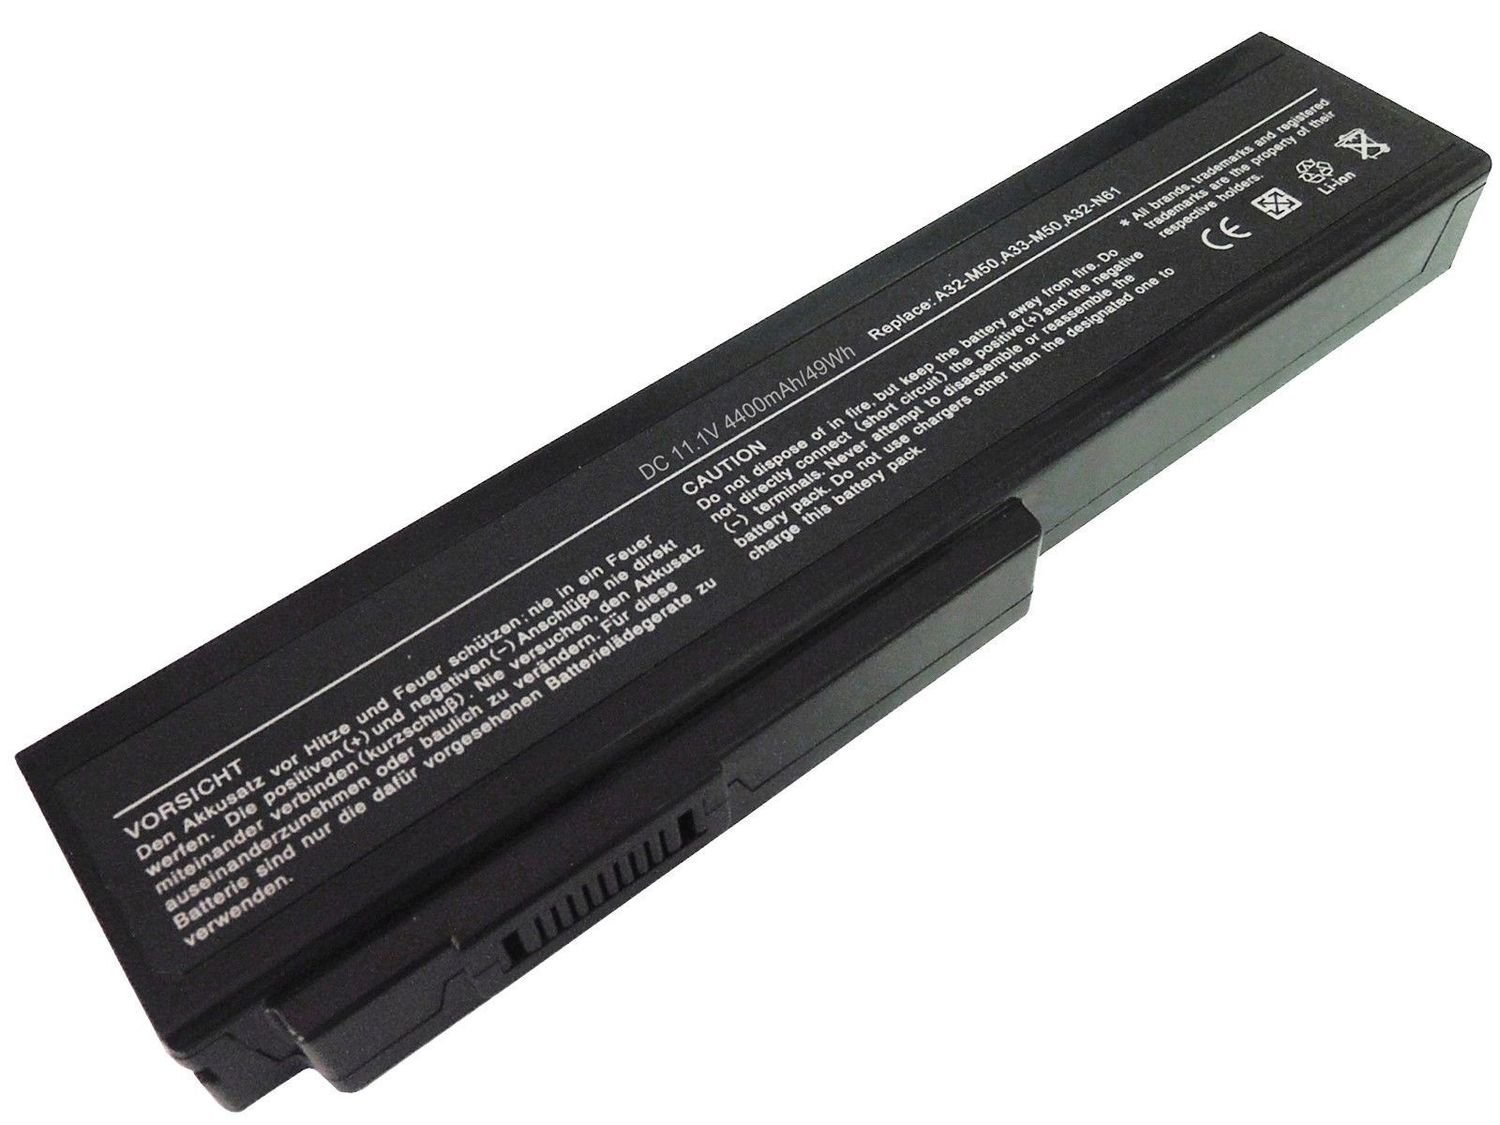 Asus A32-H36 A32-M50 A32-N61 A33-M50 A32-X64 compatible laptop battery